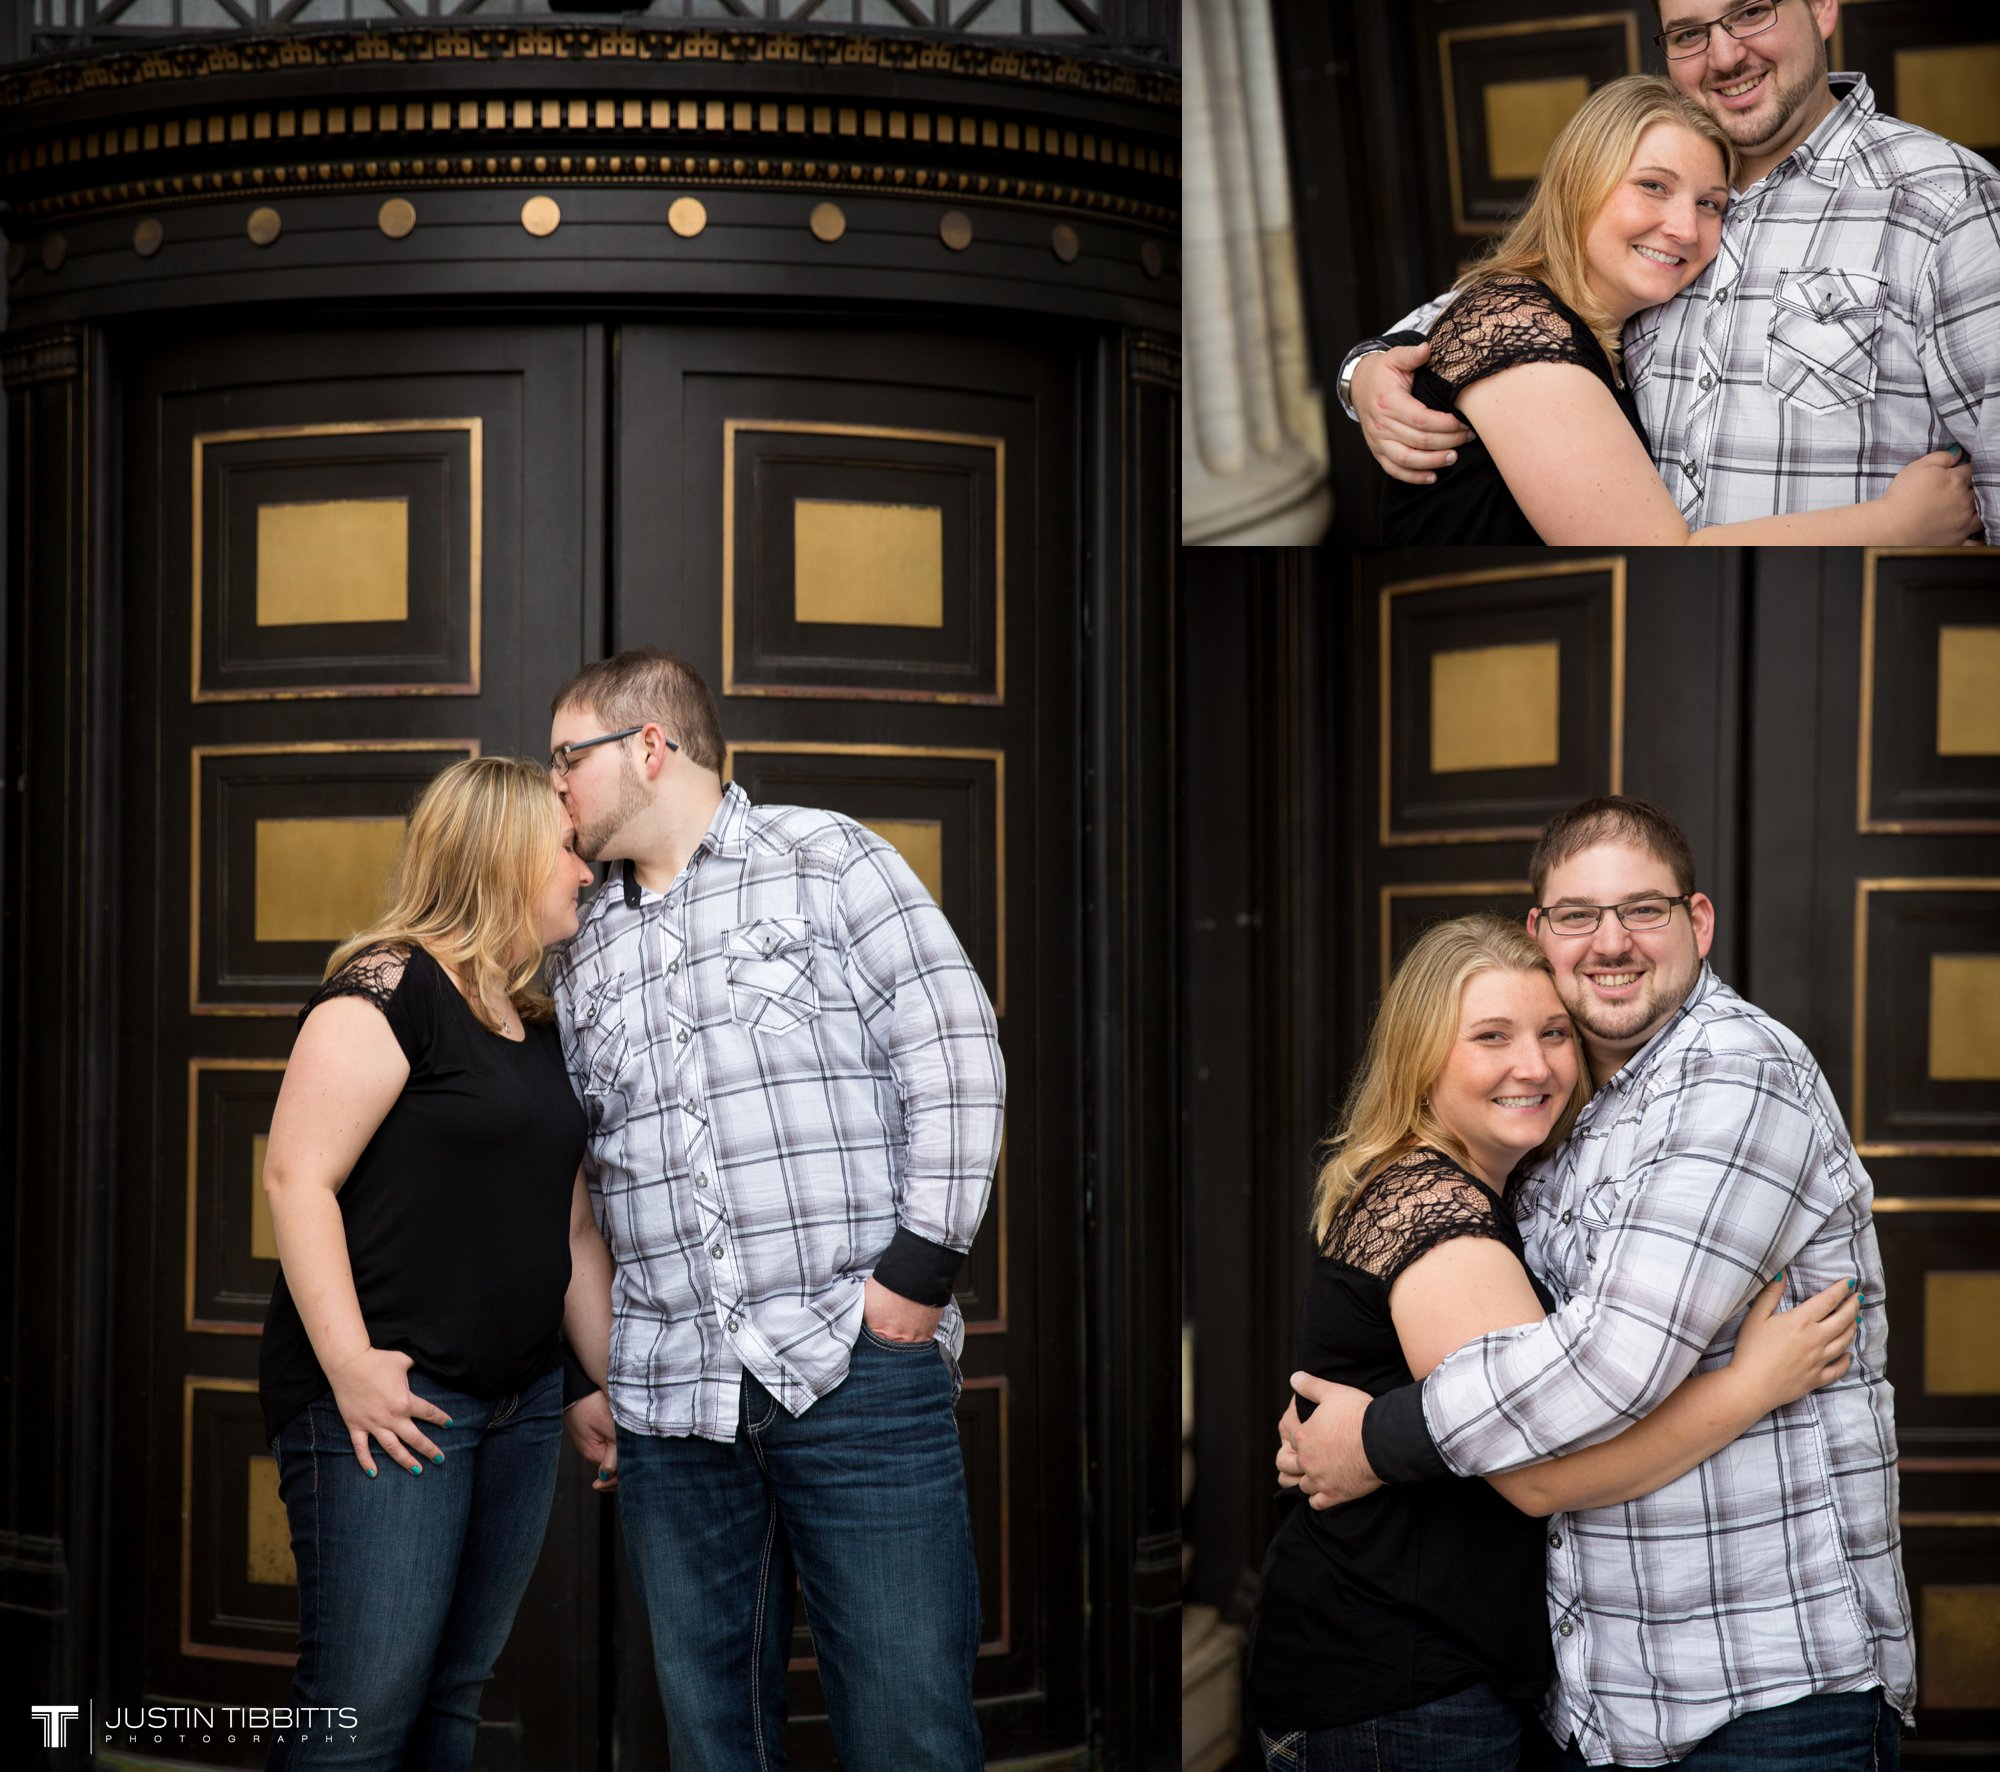 Justin Tibbitts Photography Jessica and Steve H E-shoot-72